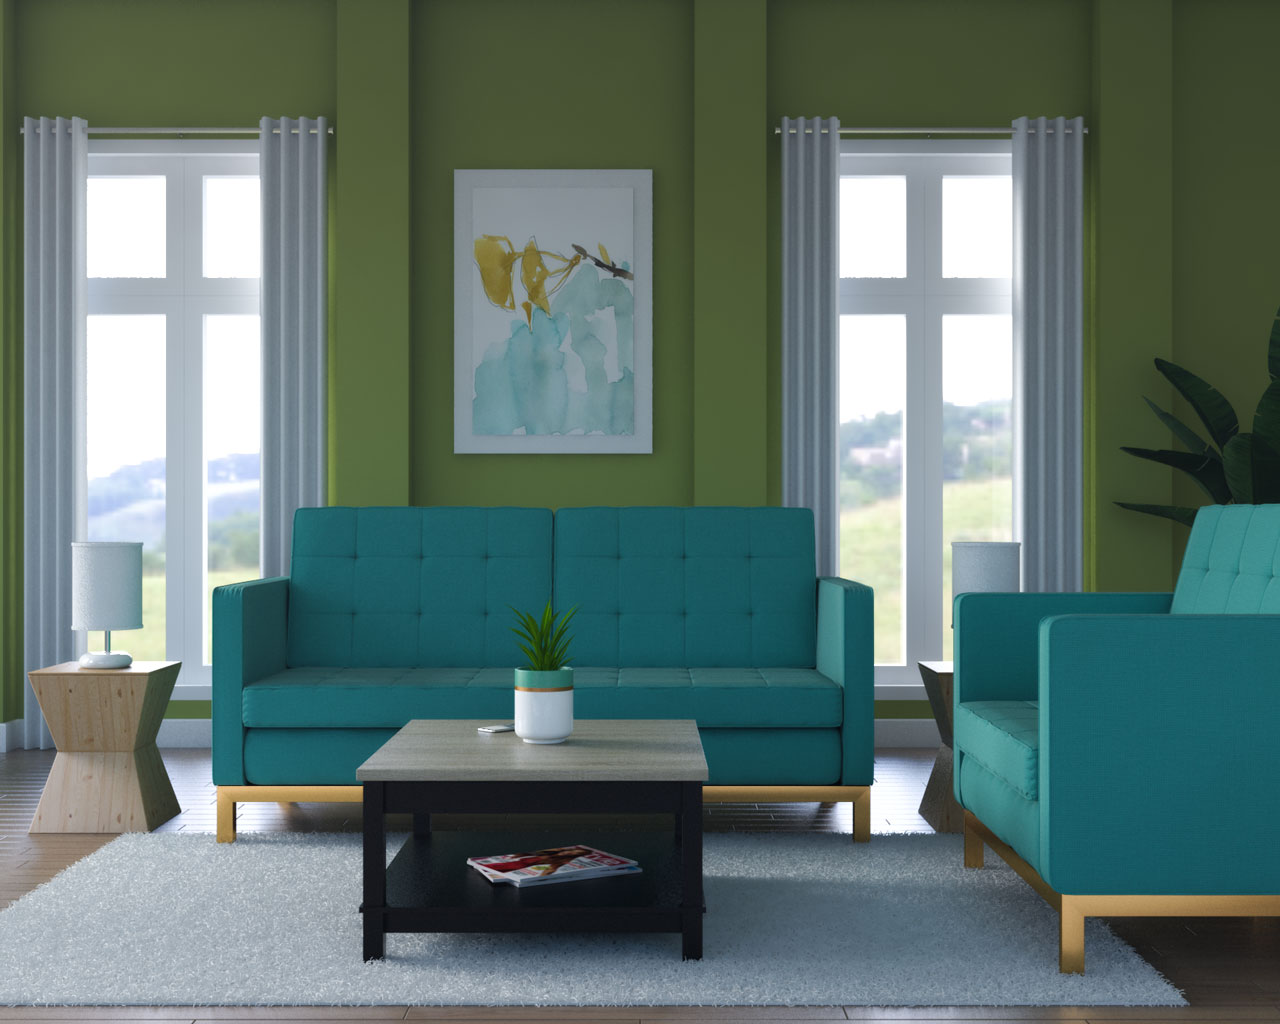 Chartreuse wall with teal furniture